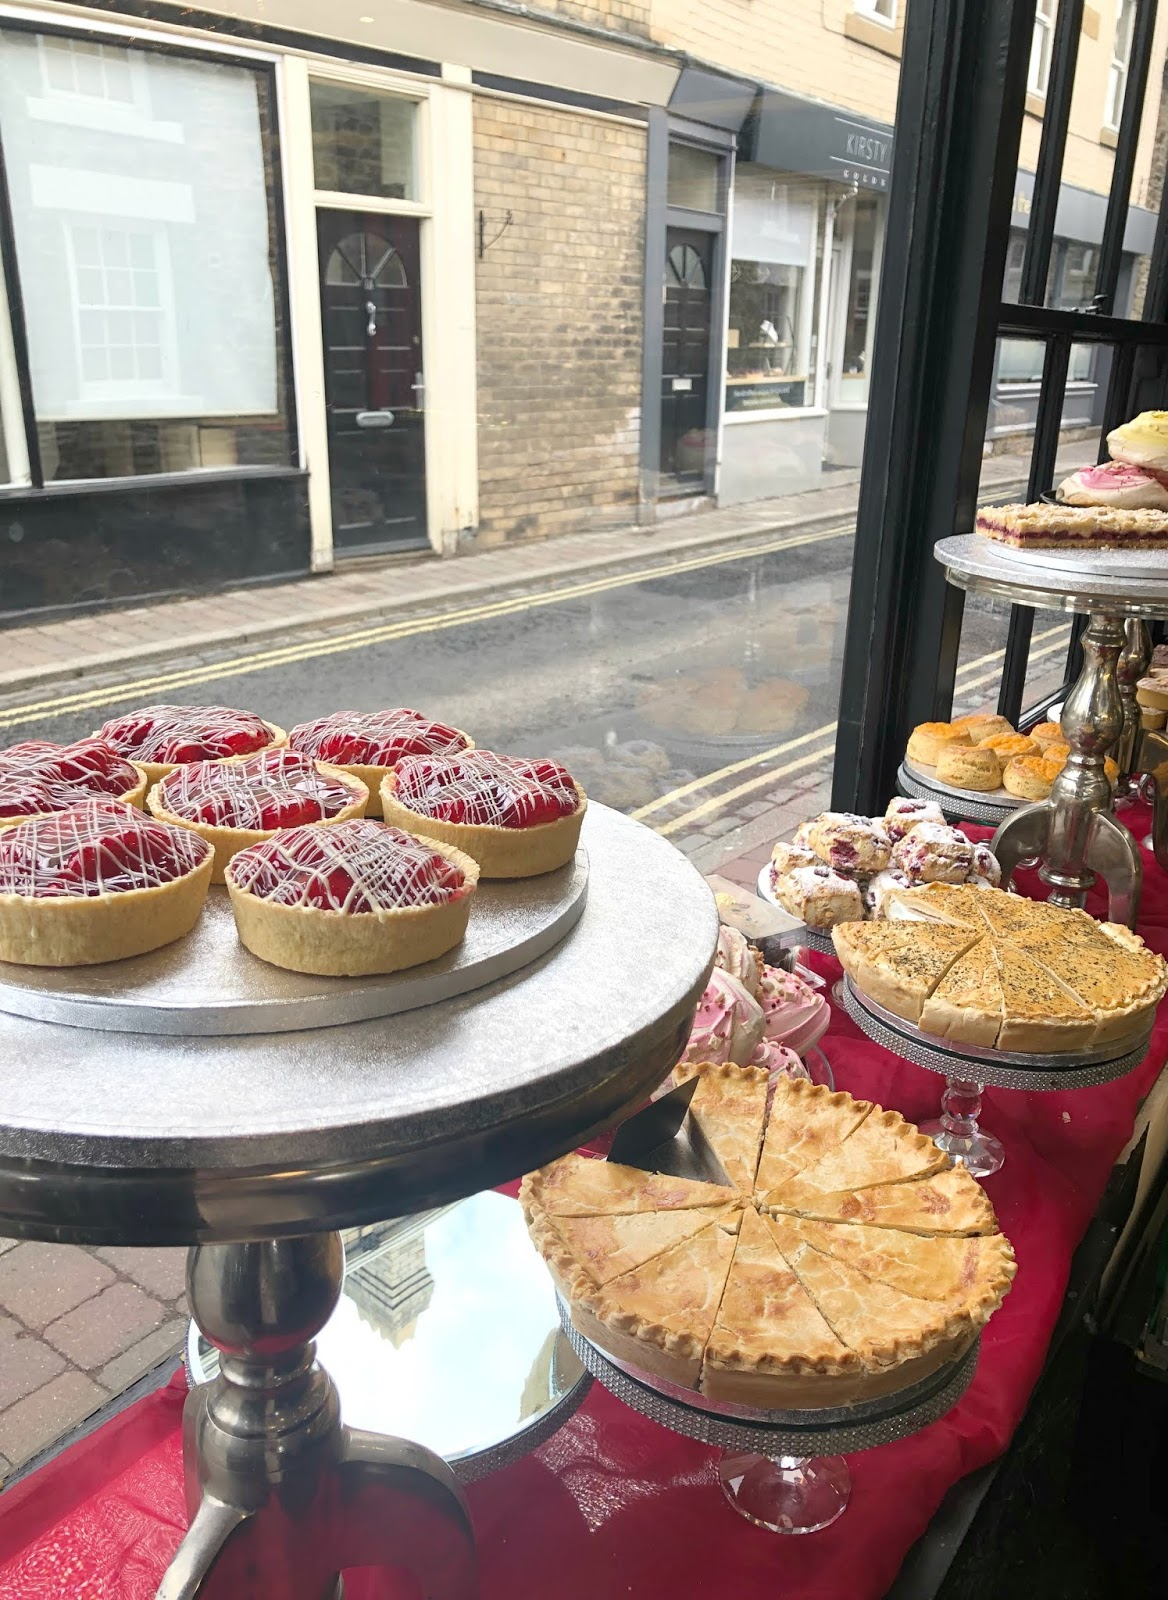 Day Trip to Corbridge - Grants Bakery